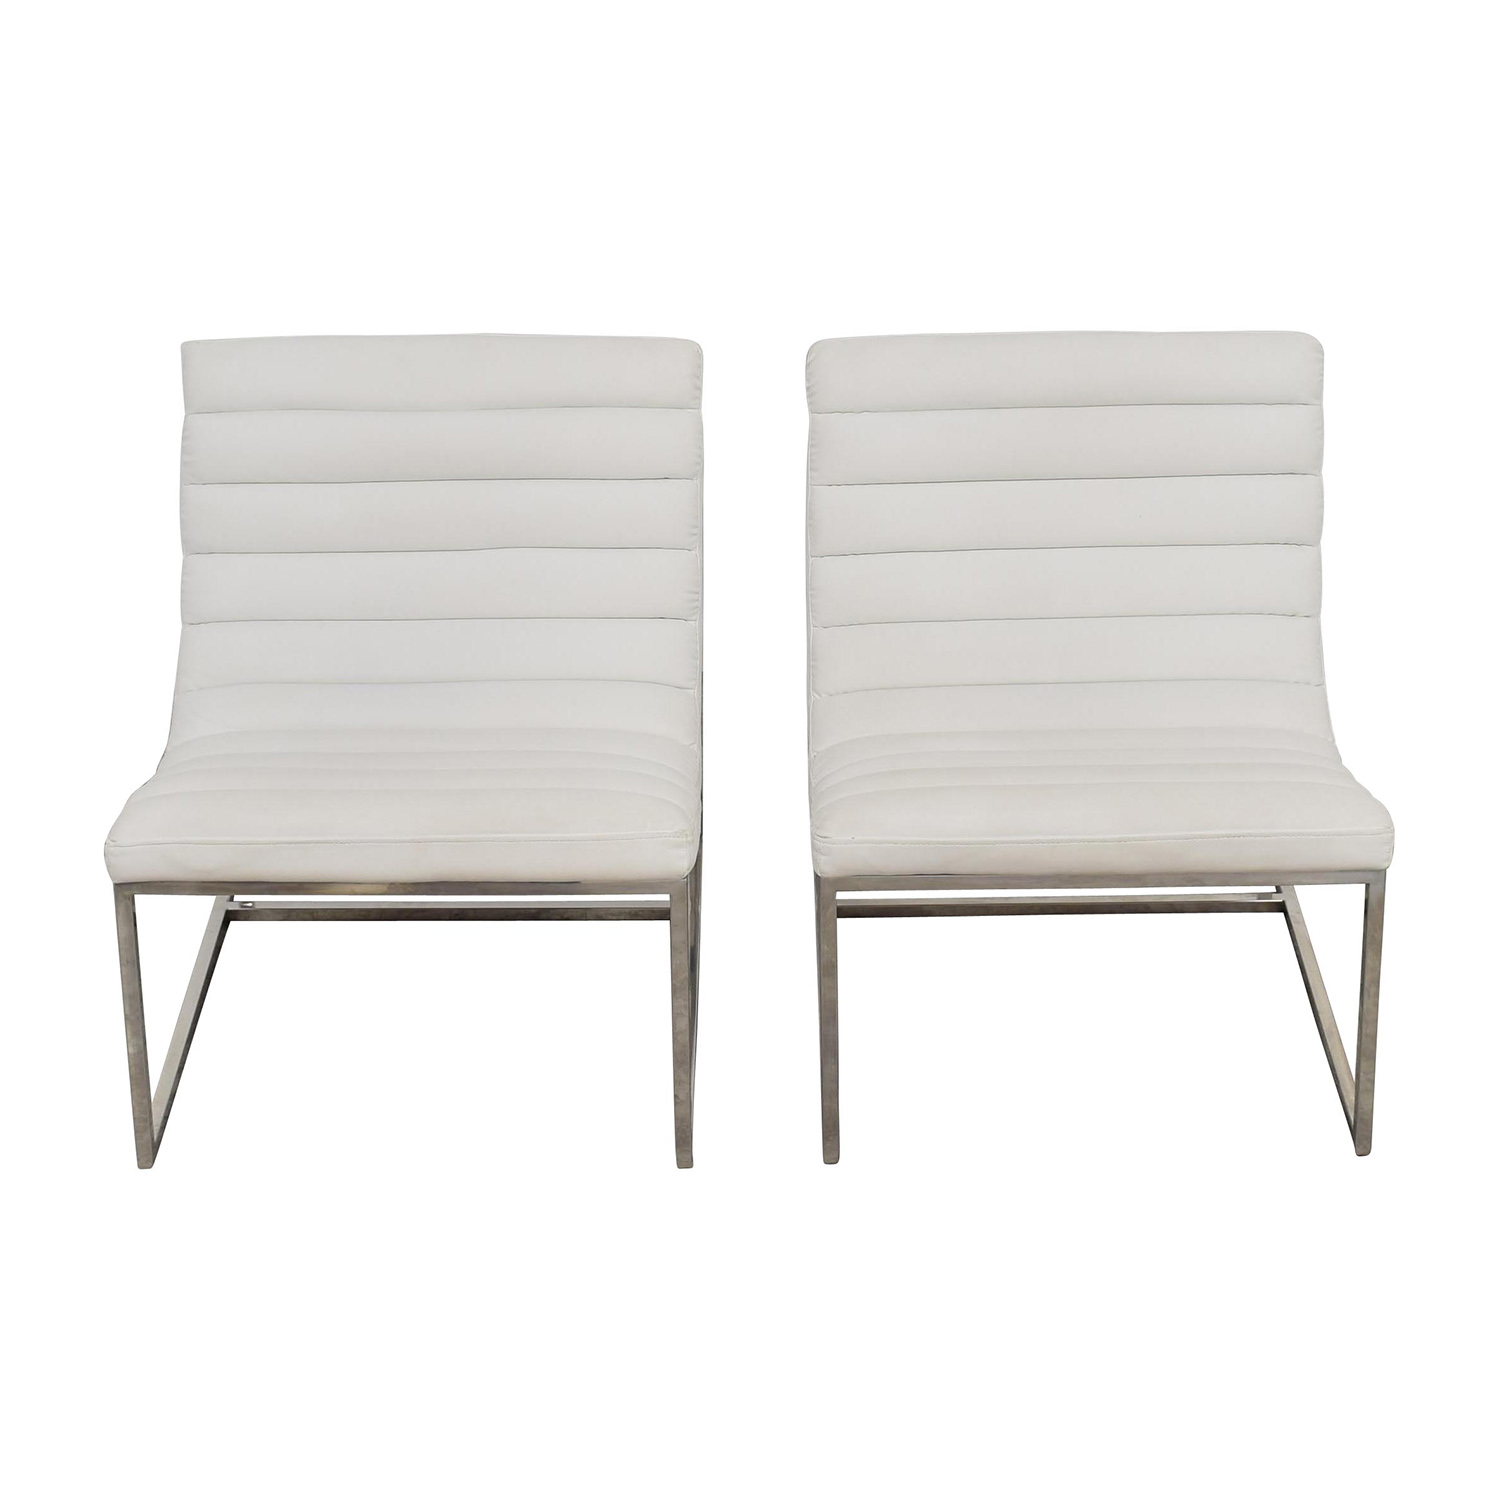 White Leather Sofa Chairs price